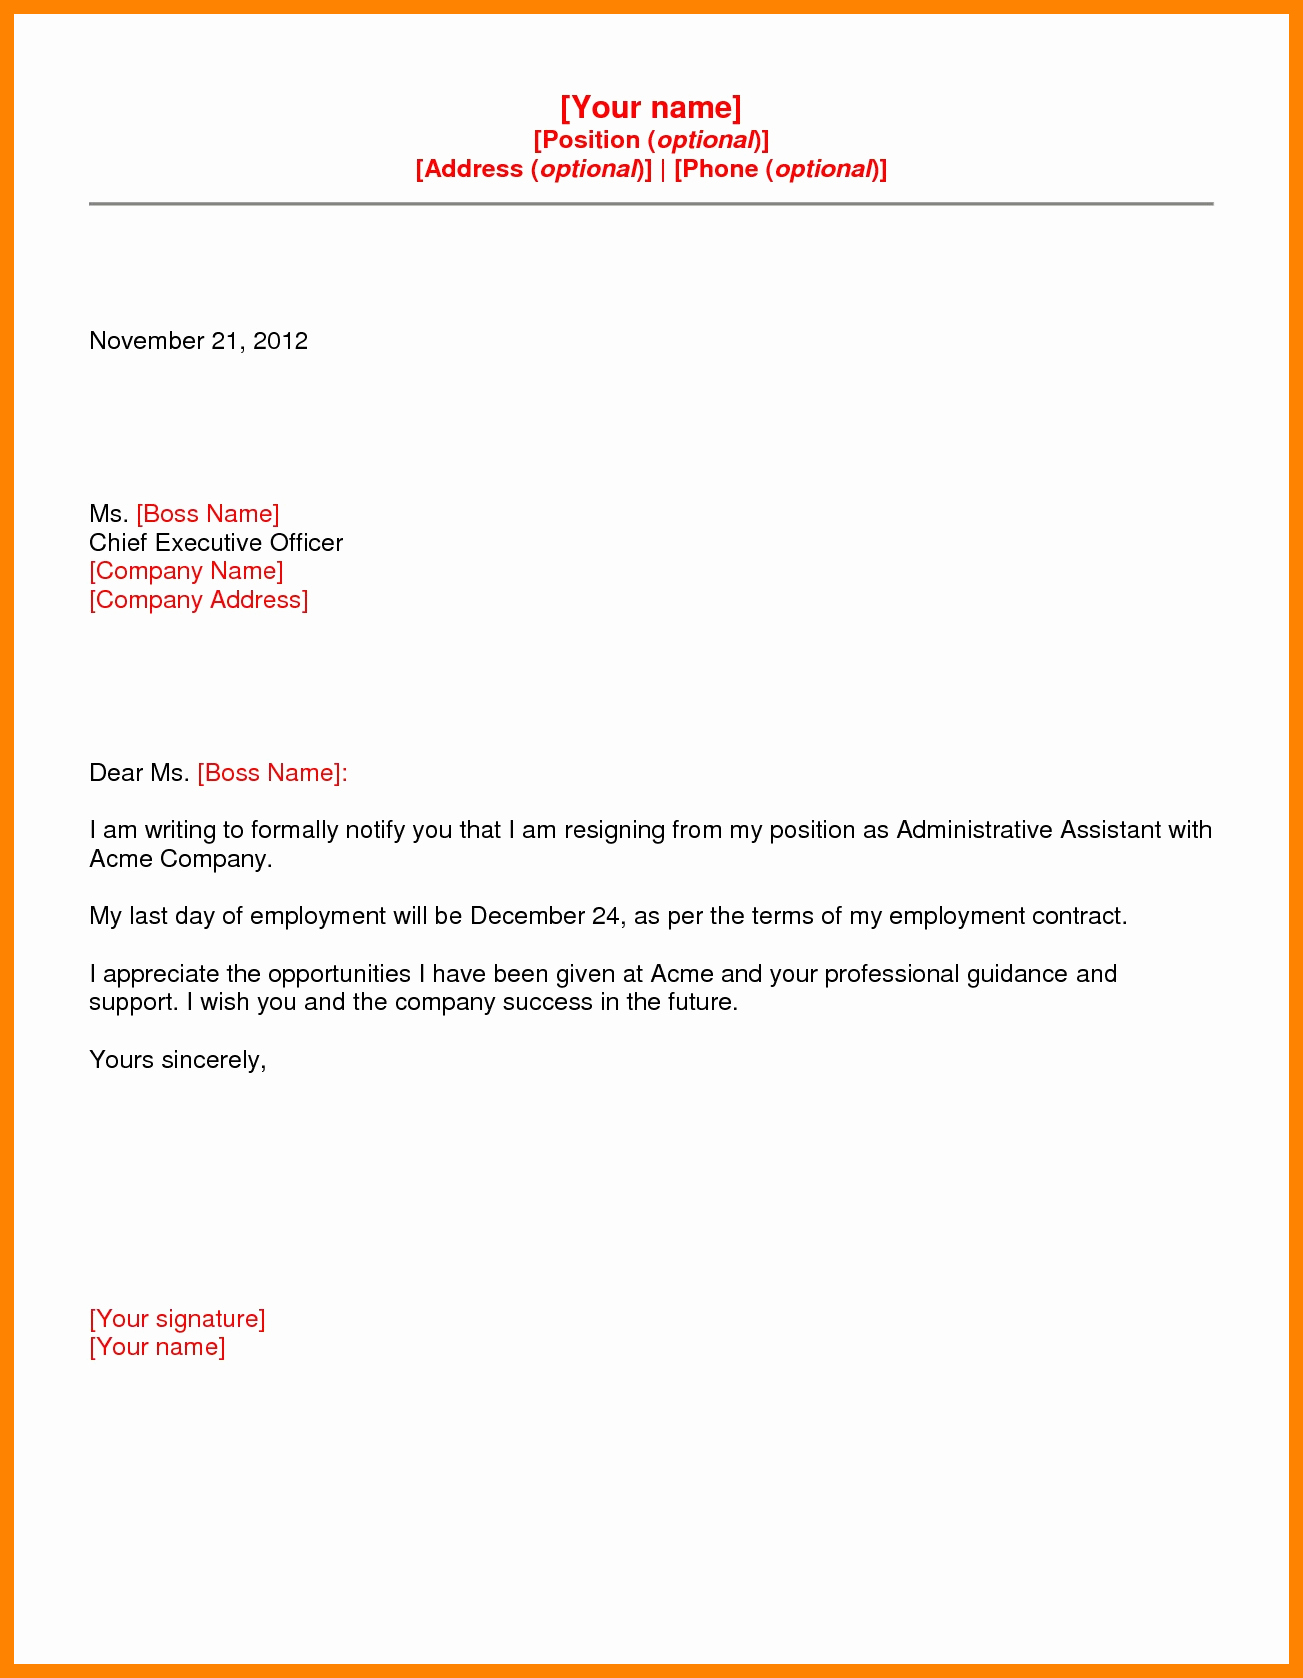 Letter Of Resignation Template Microsoft Awesome 6 Microsoft Word Resignation Letter